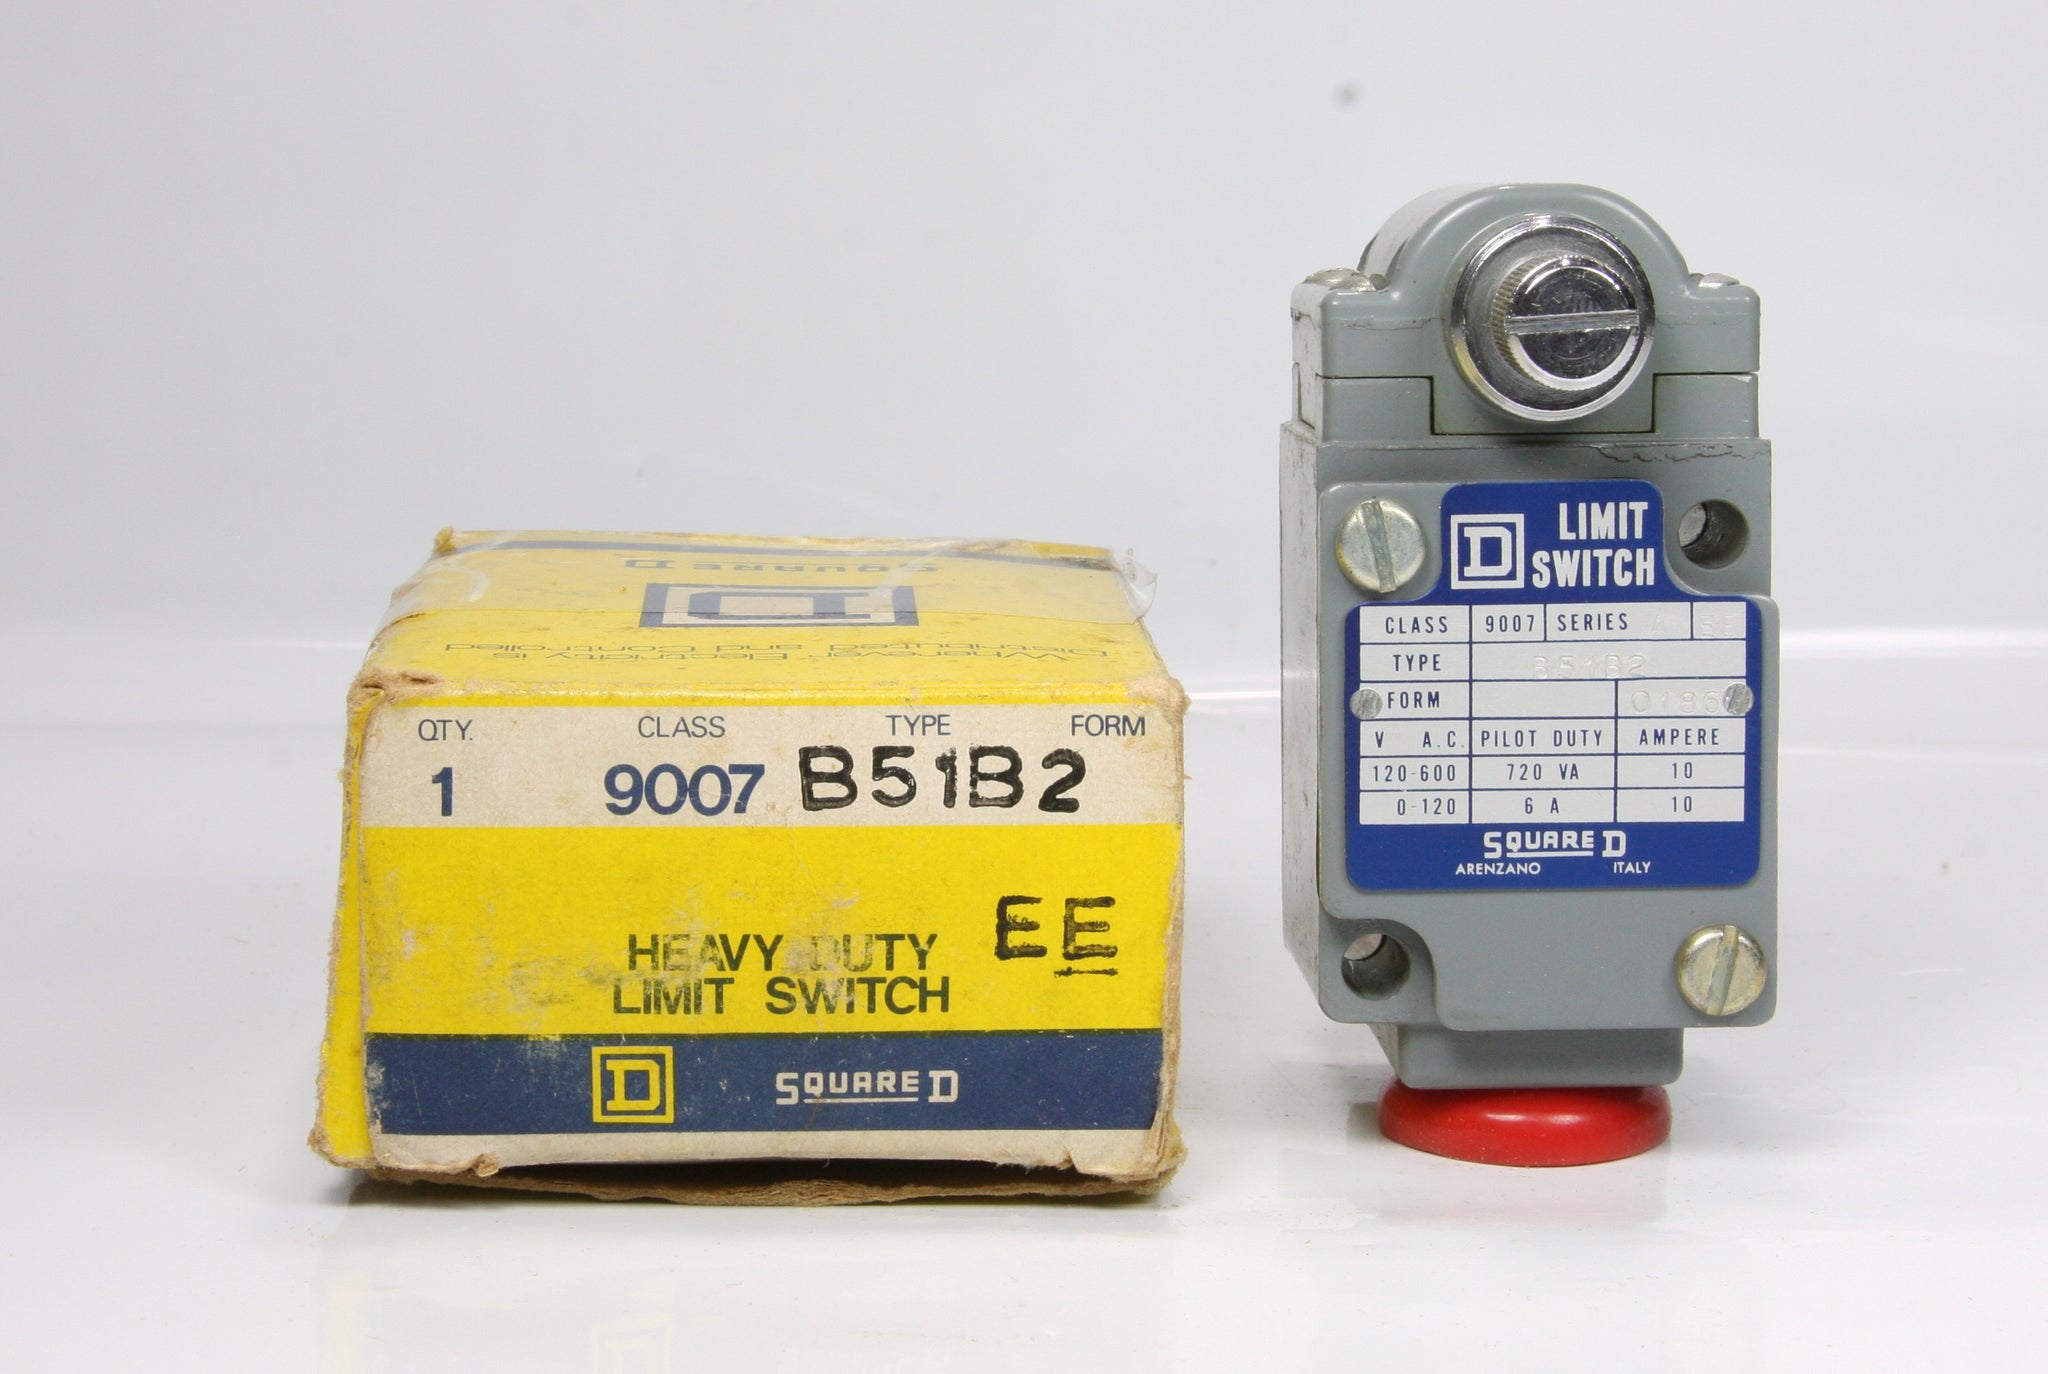 *New* SQUARE D Heavy Duty Limit Switch Class 9007 Type B51B2